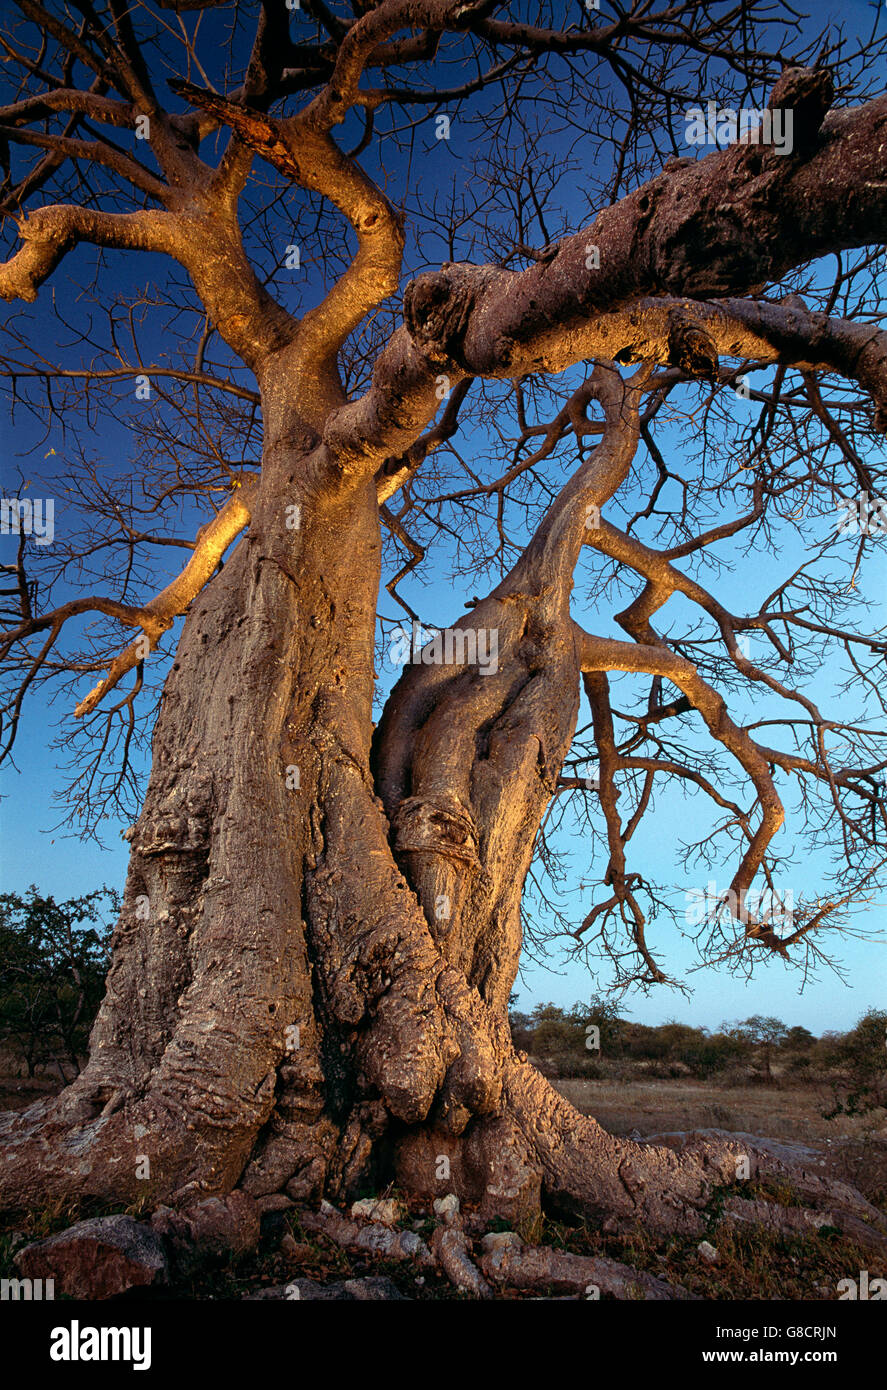 Baobab tree in the evening, Alldays, Limpopo Province, South Africa. - Stock Image